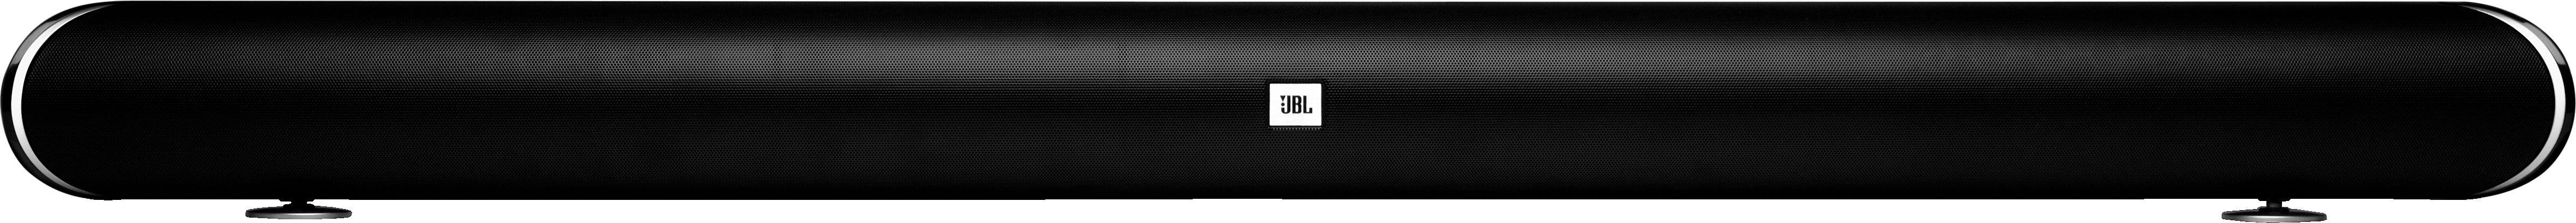 JBL Cinema SB350 Soundbar, 320 W, Bluetooth